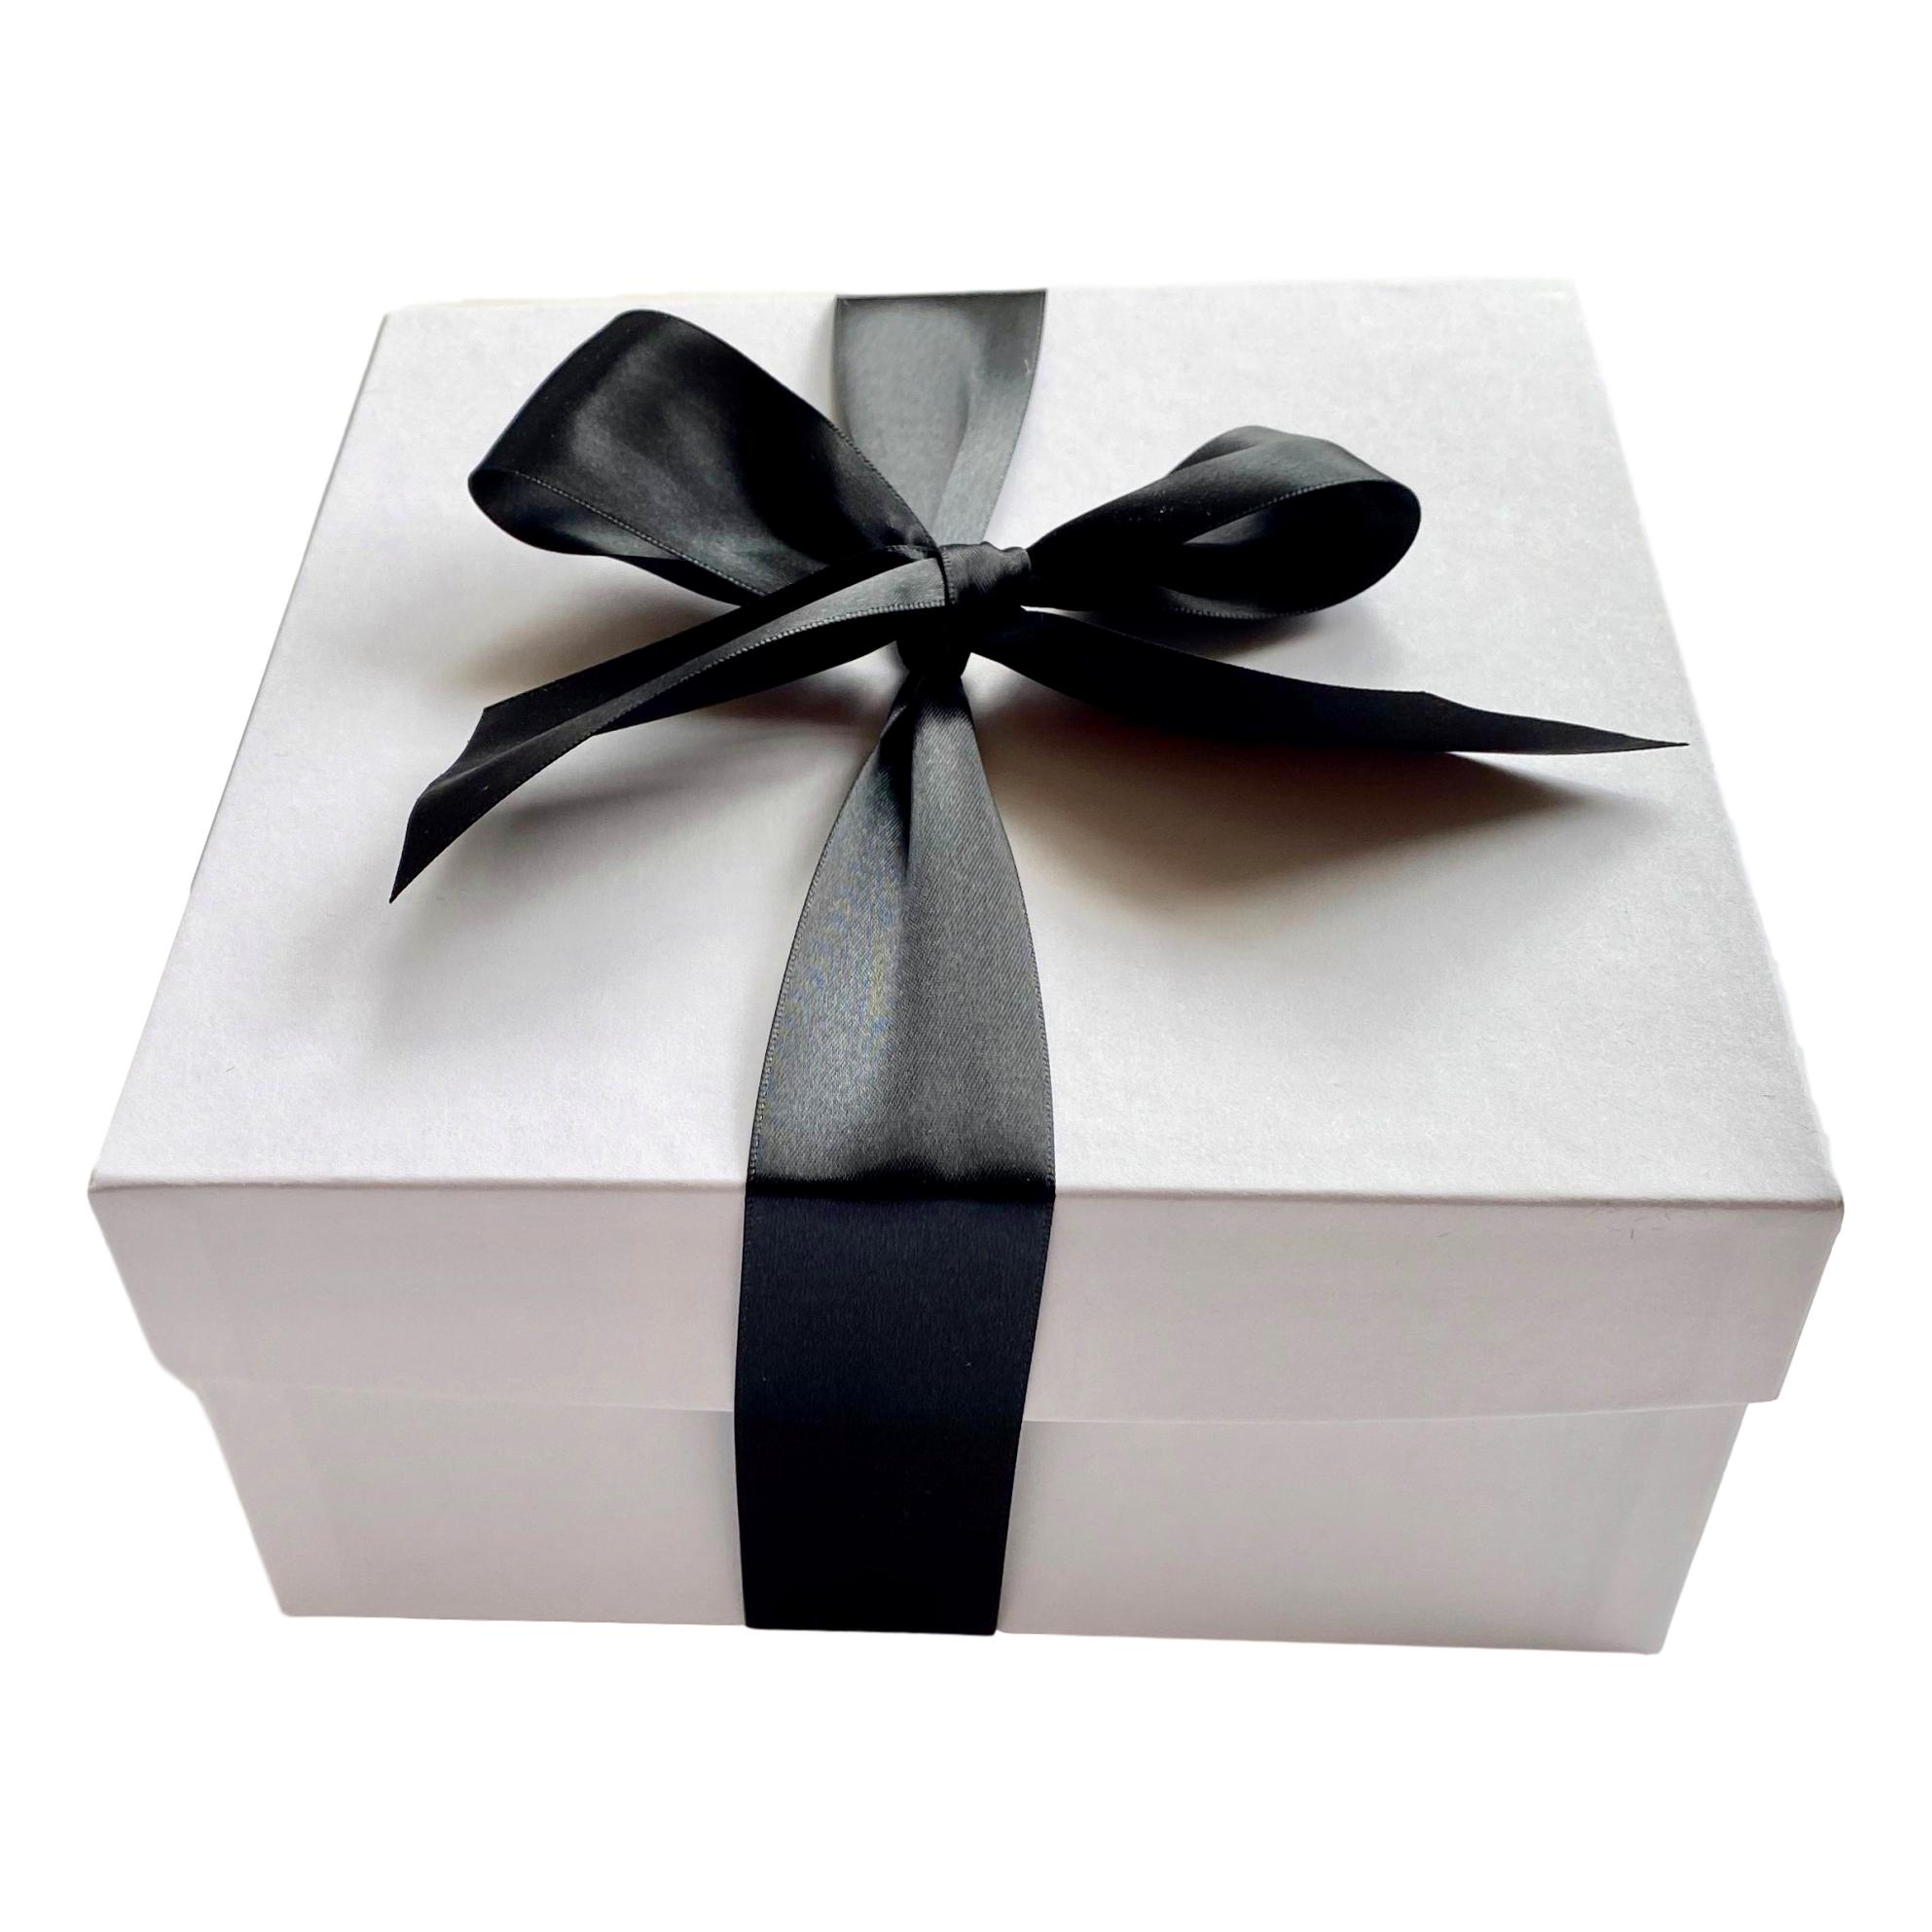 How to Build Your Own Unique Gift Box